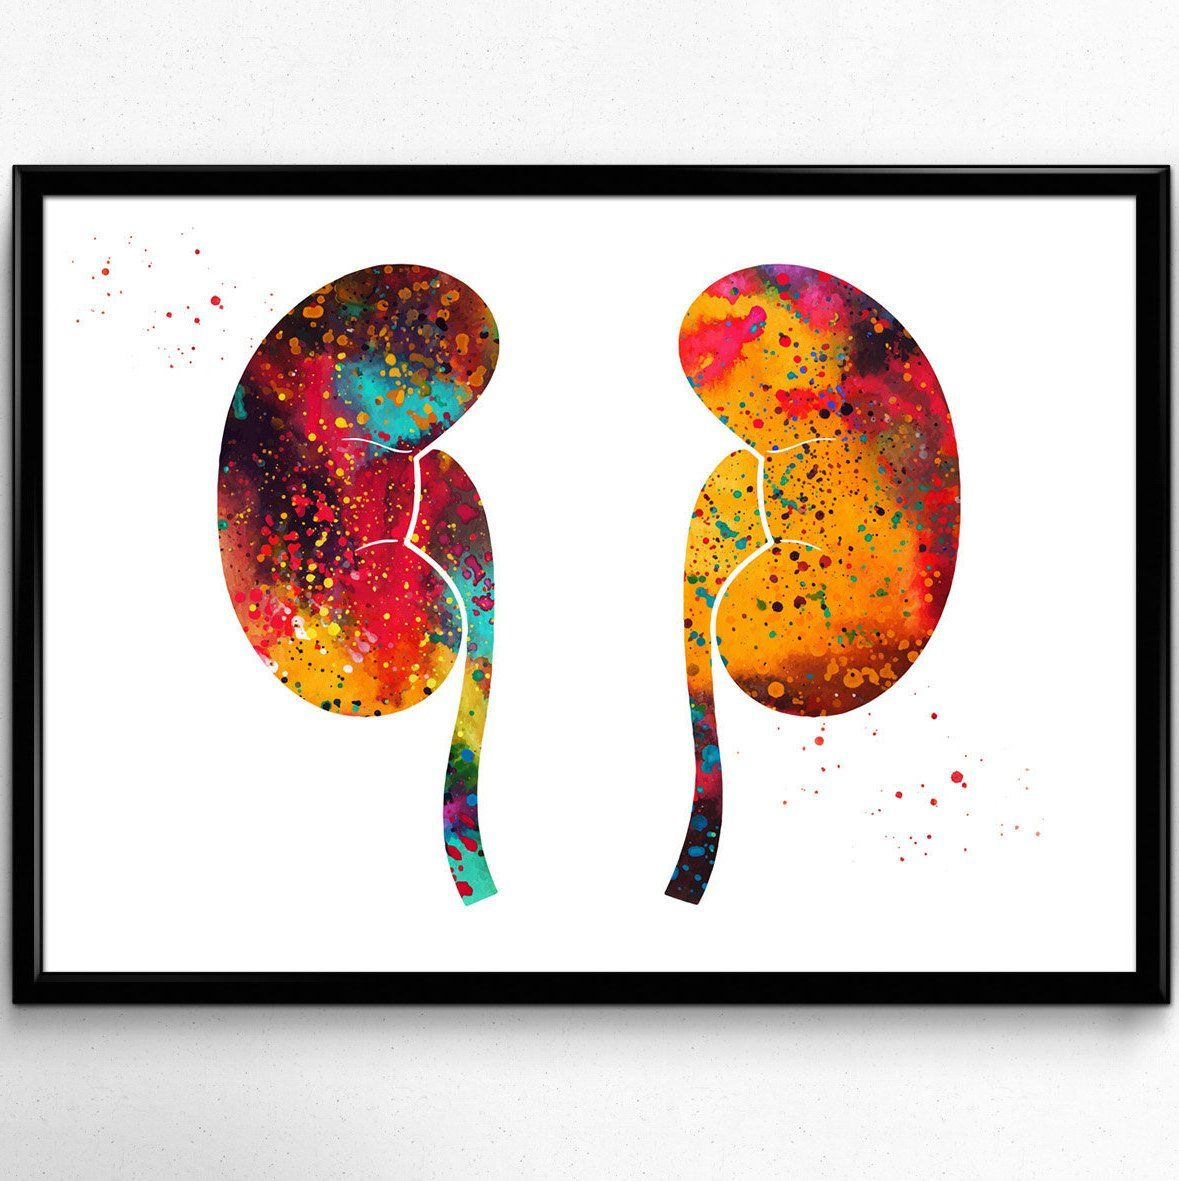 The Kidneys Anatomy Watercolor Print Human Kidneys Poster